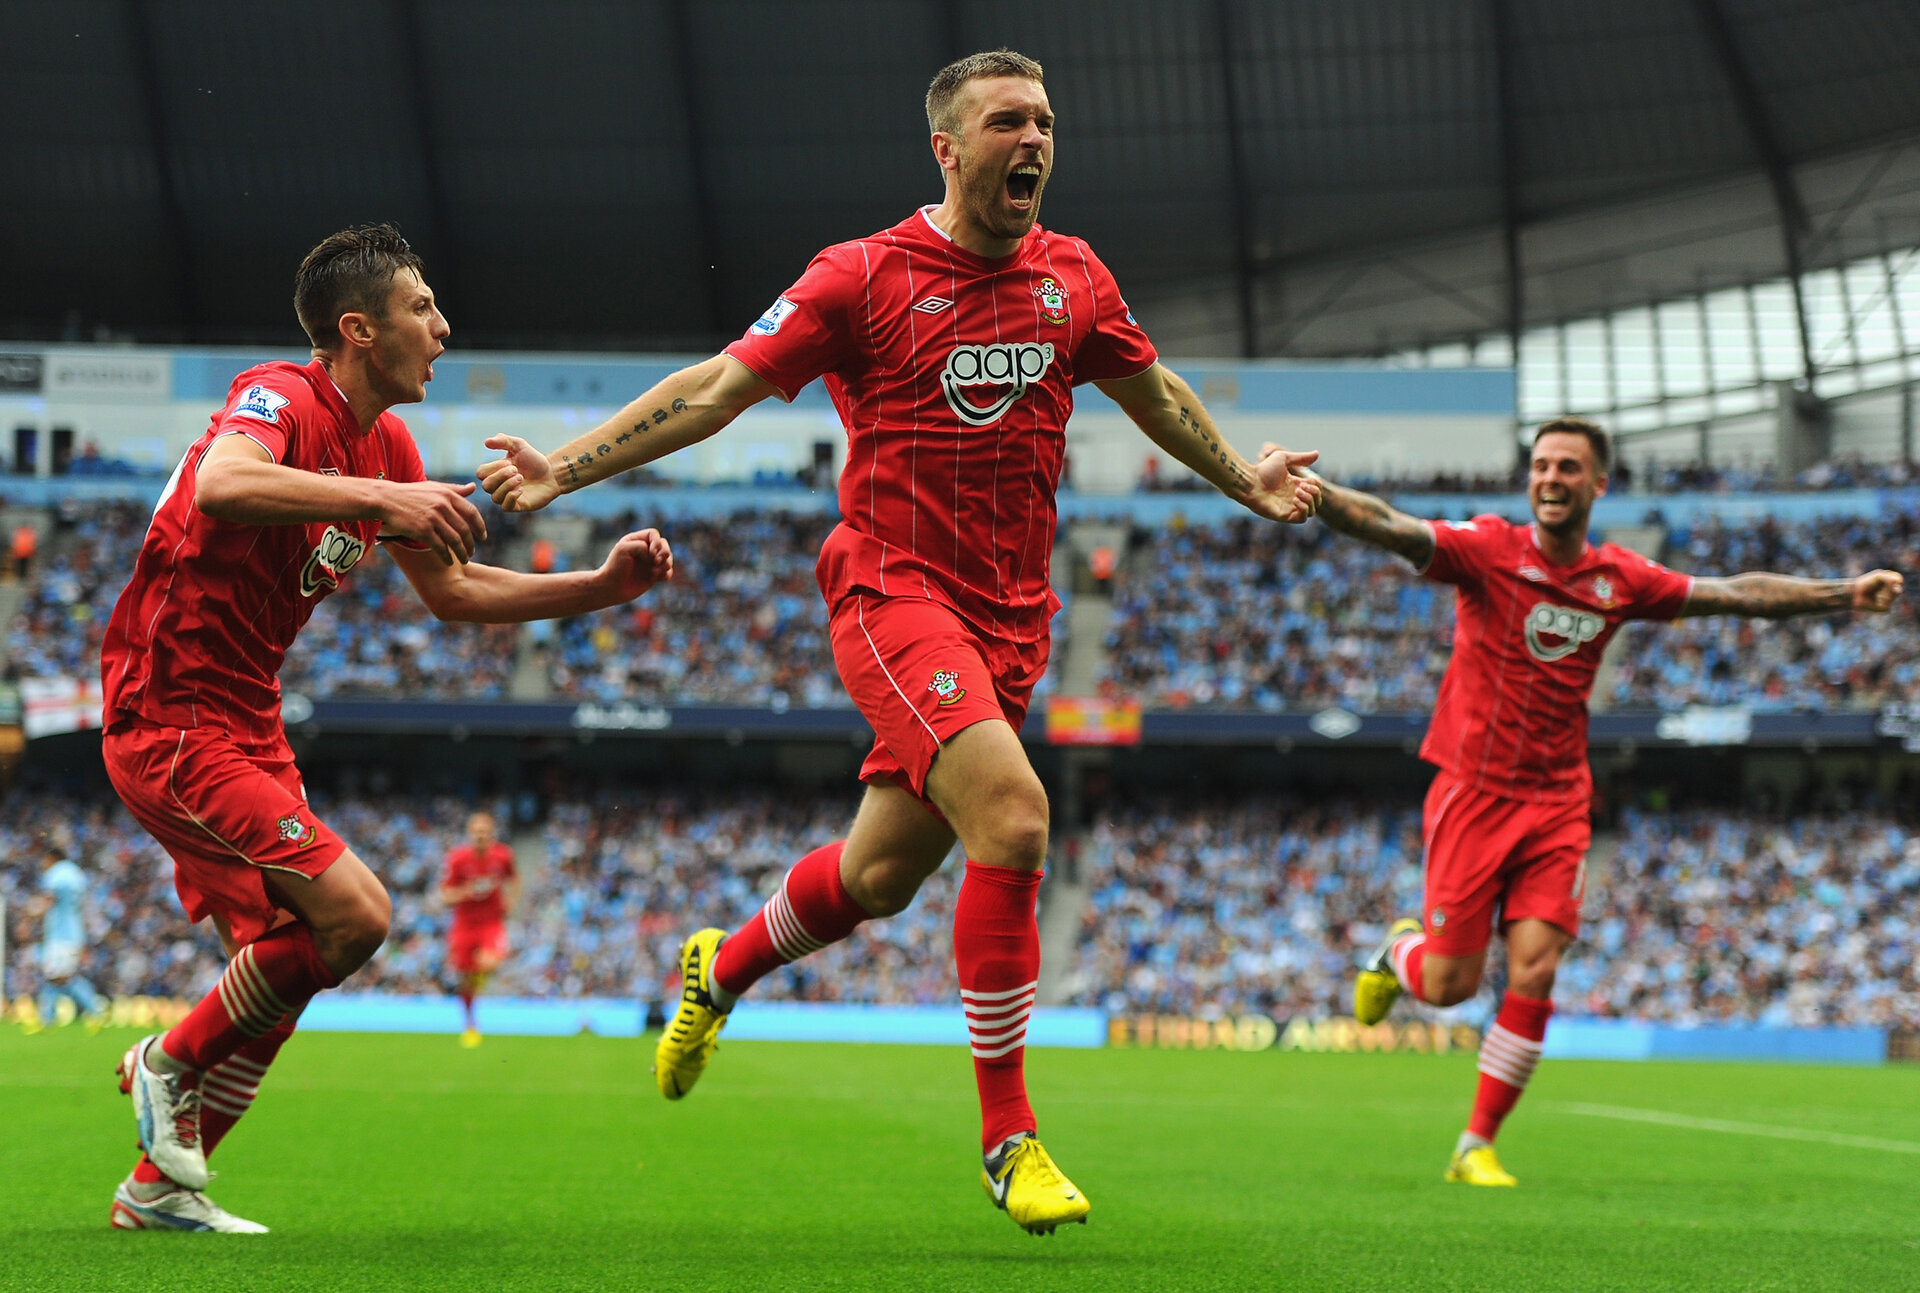 MANCHESTER, ENGLAND - AUGUST 19:  Rickie Lambert of Southampton celebrates scoring his team's first goal during the Barclays Premier League match between Manchester City and Southampton at Etihad Stadium on August 19, 2012 in Manchester, England.  (Photo by Michael Regan/Getty Images)